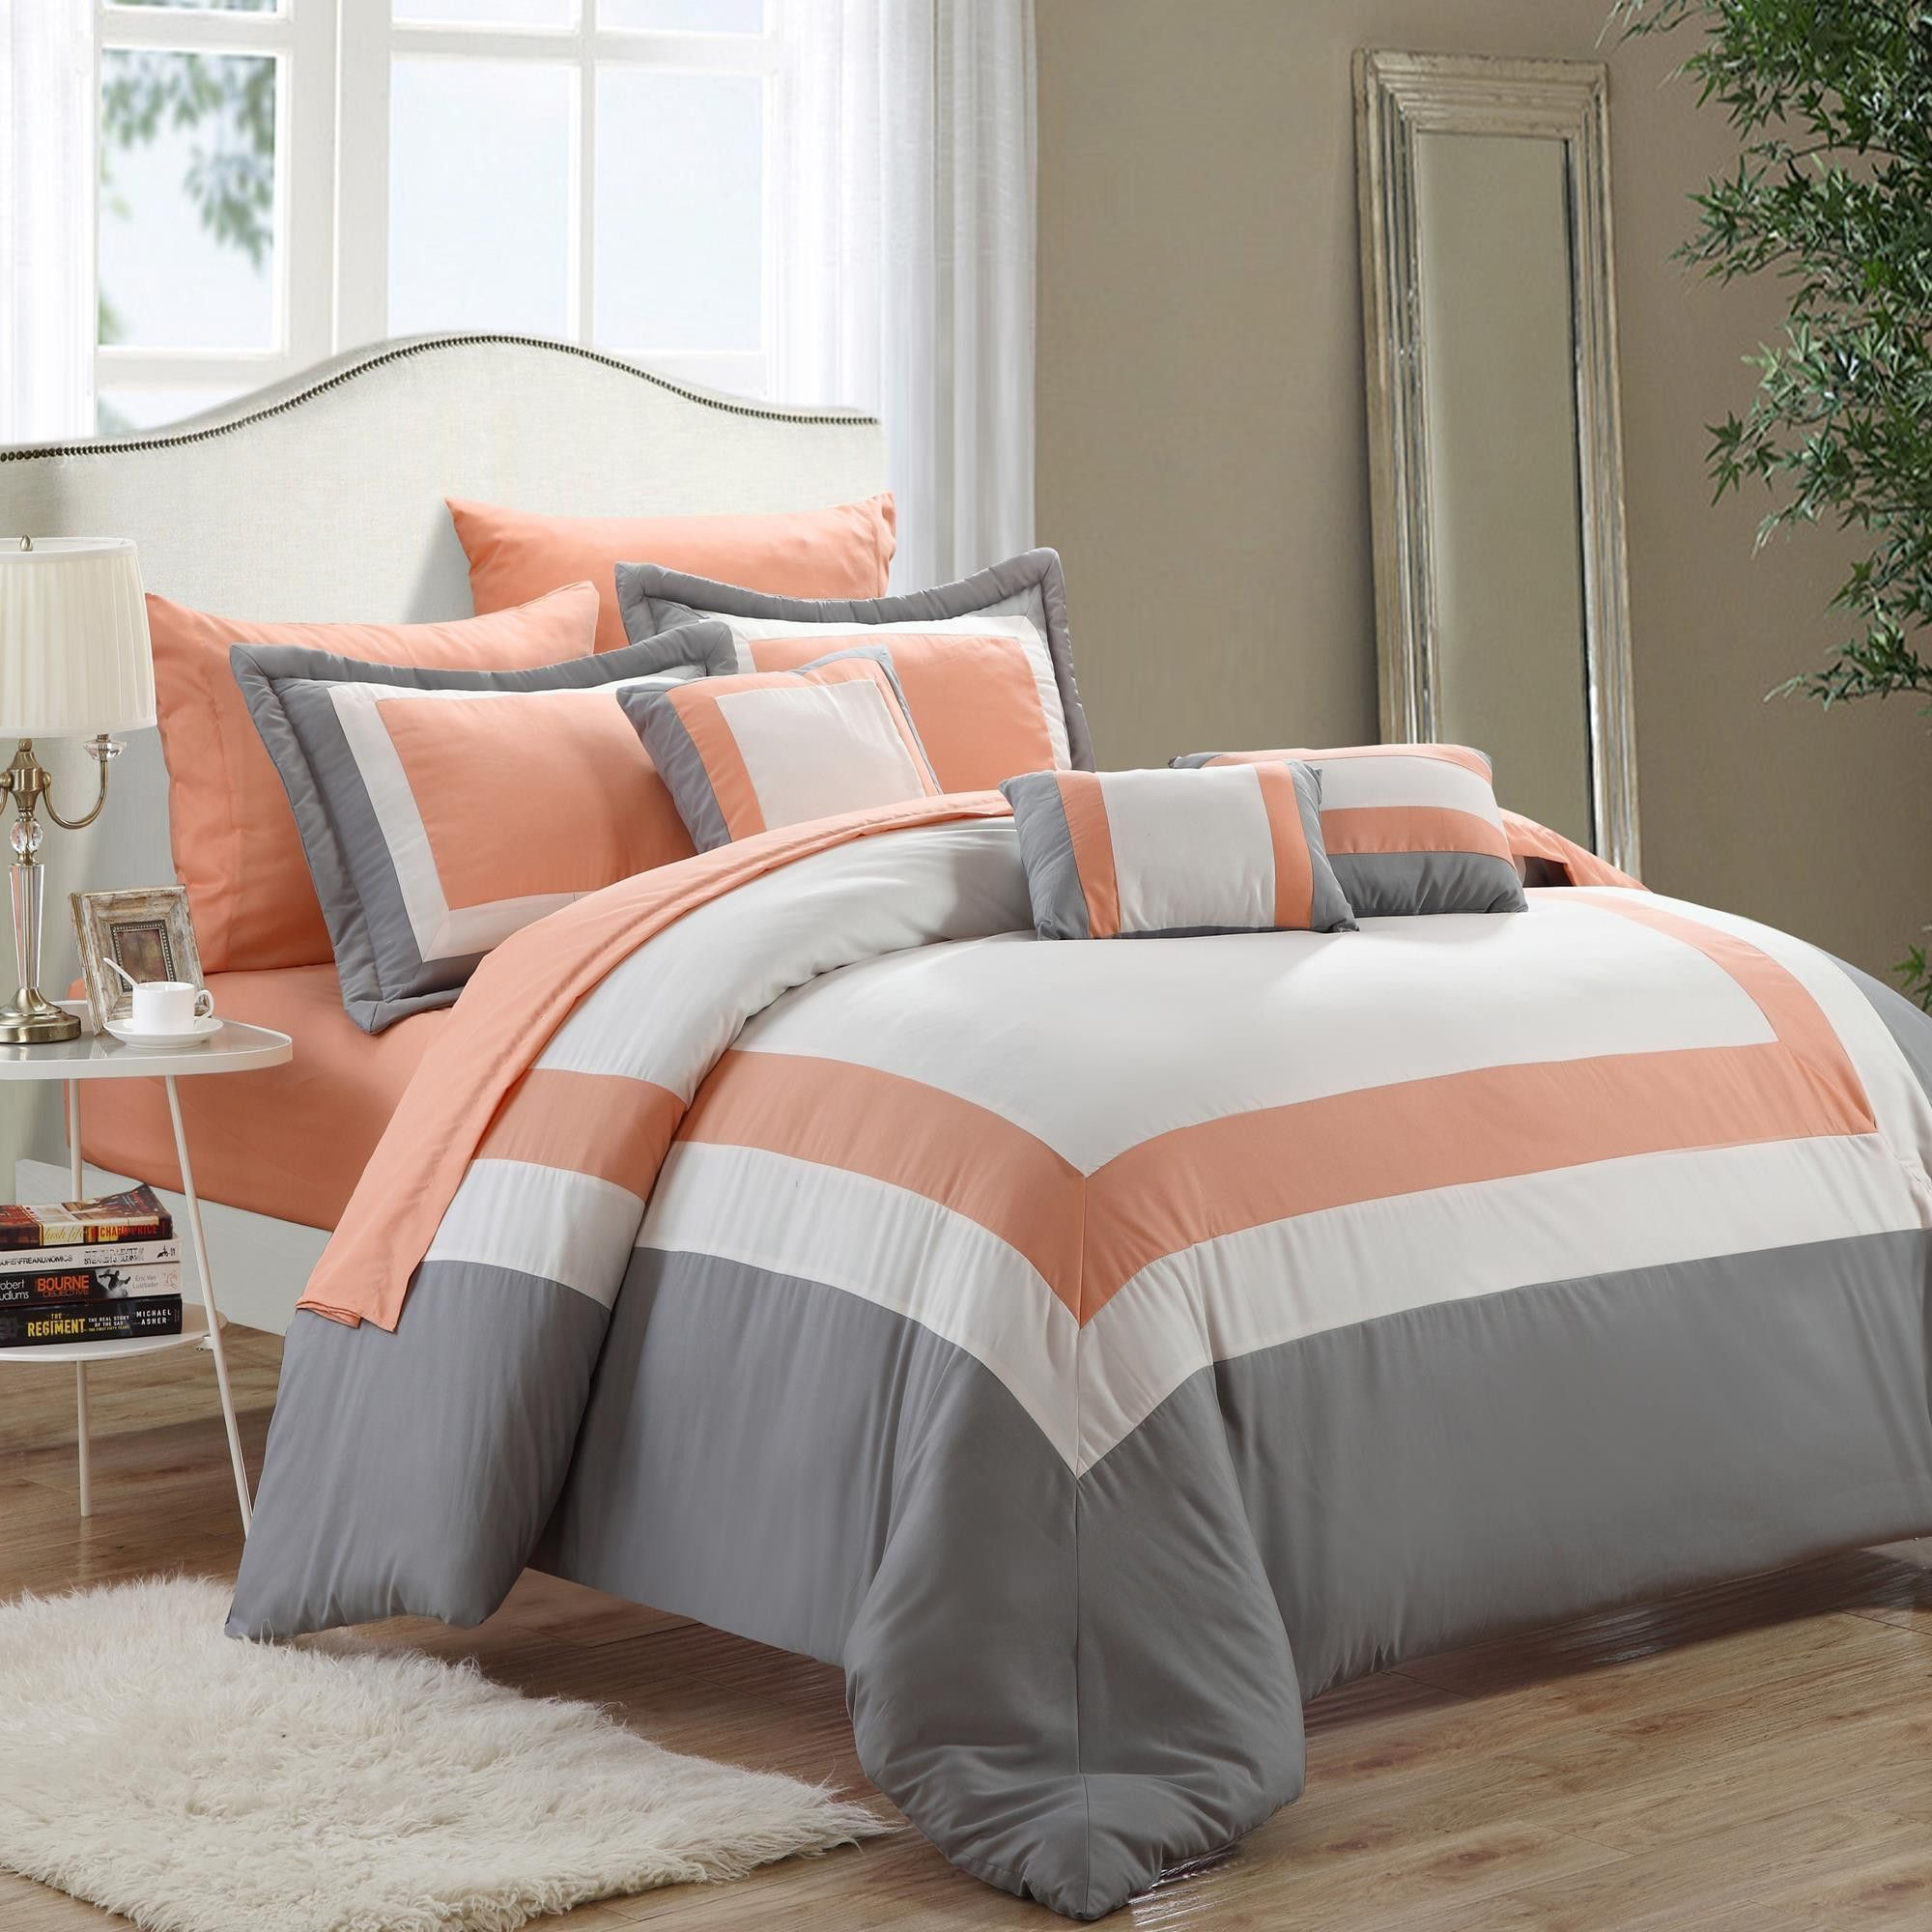 10 Ultra Small Bedrooms With King Size Beds: Duke Peach, White & Grey 10 Piece Comforter Bed In A Bag